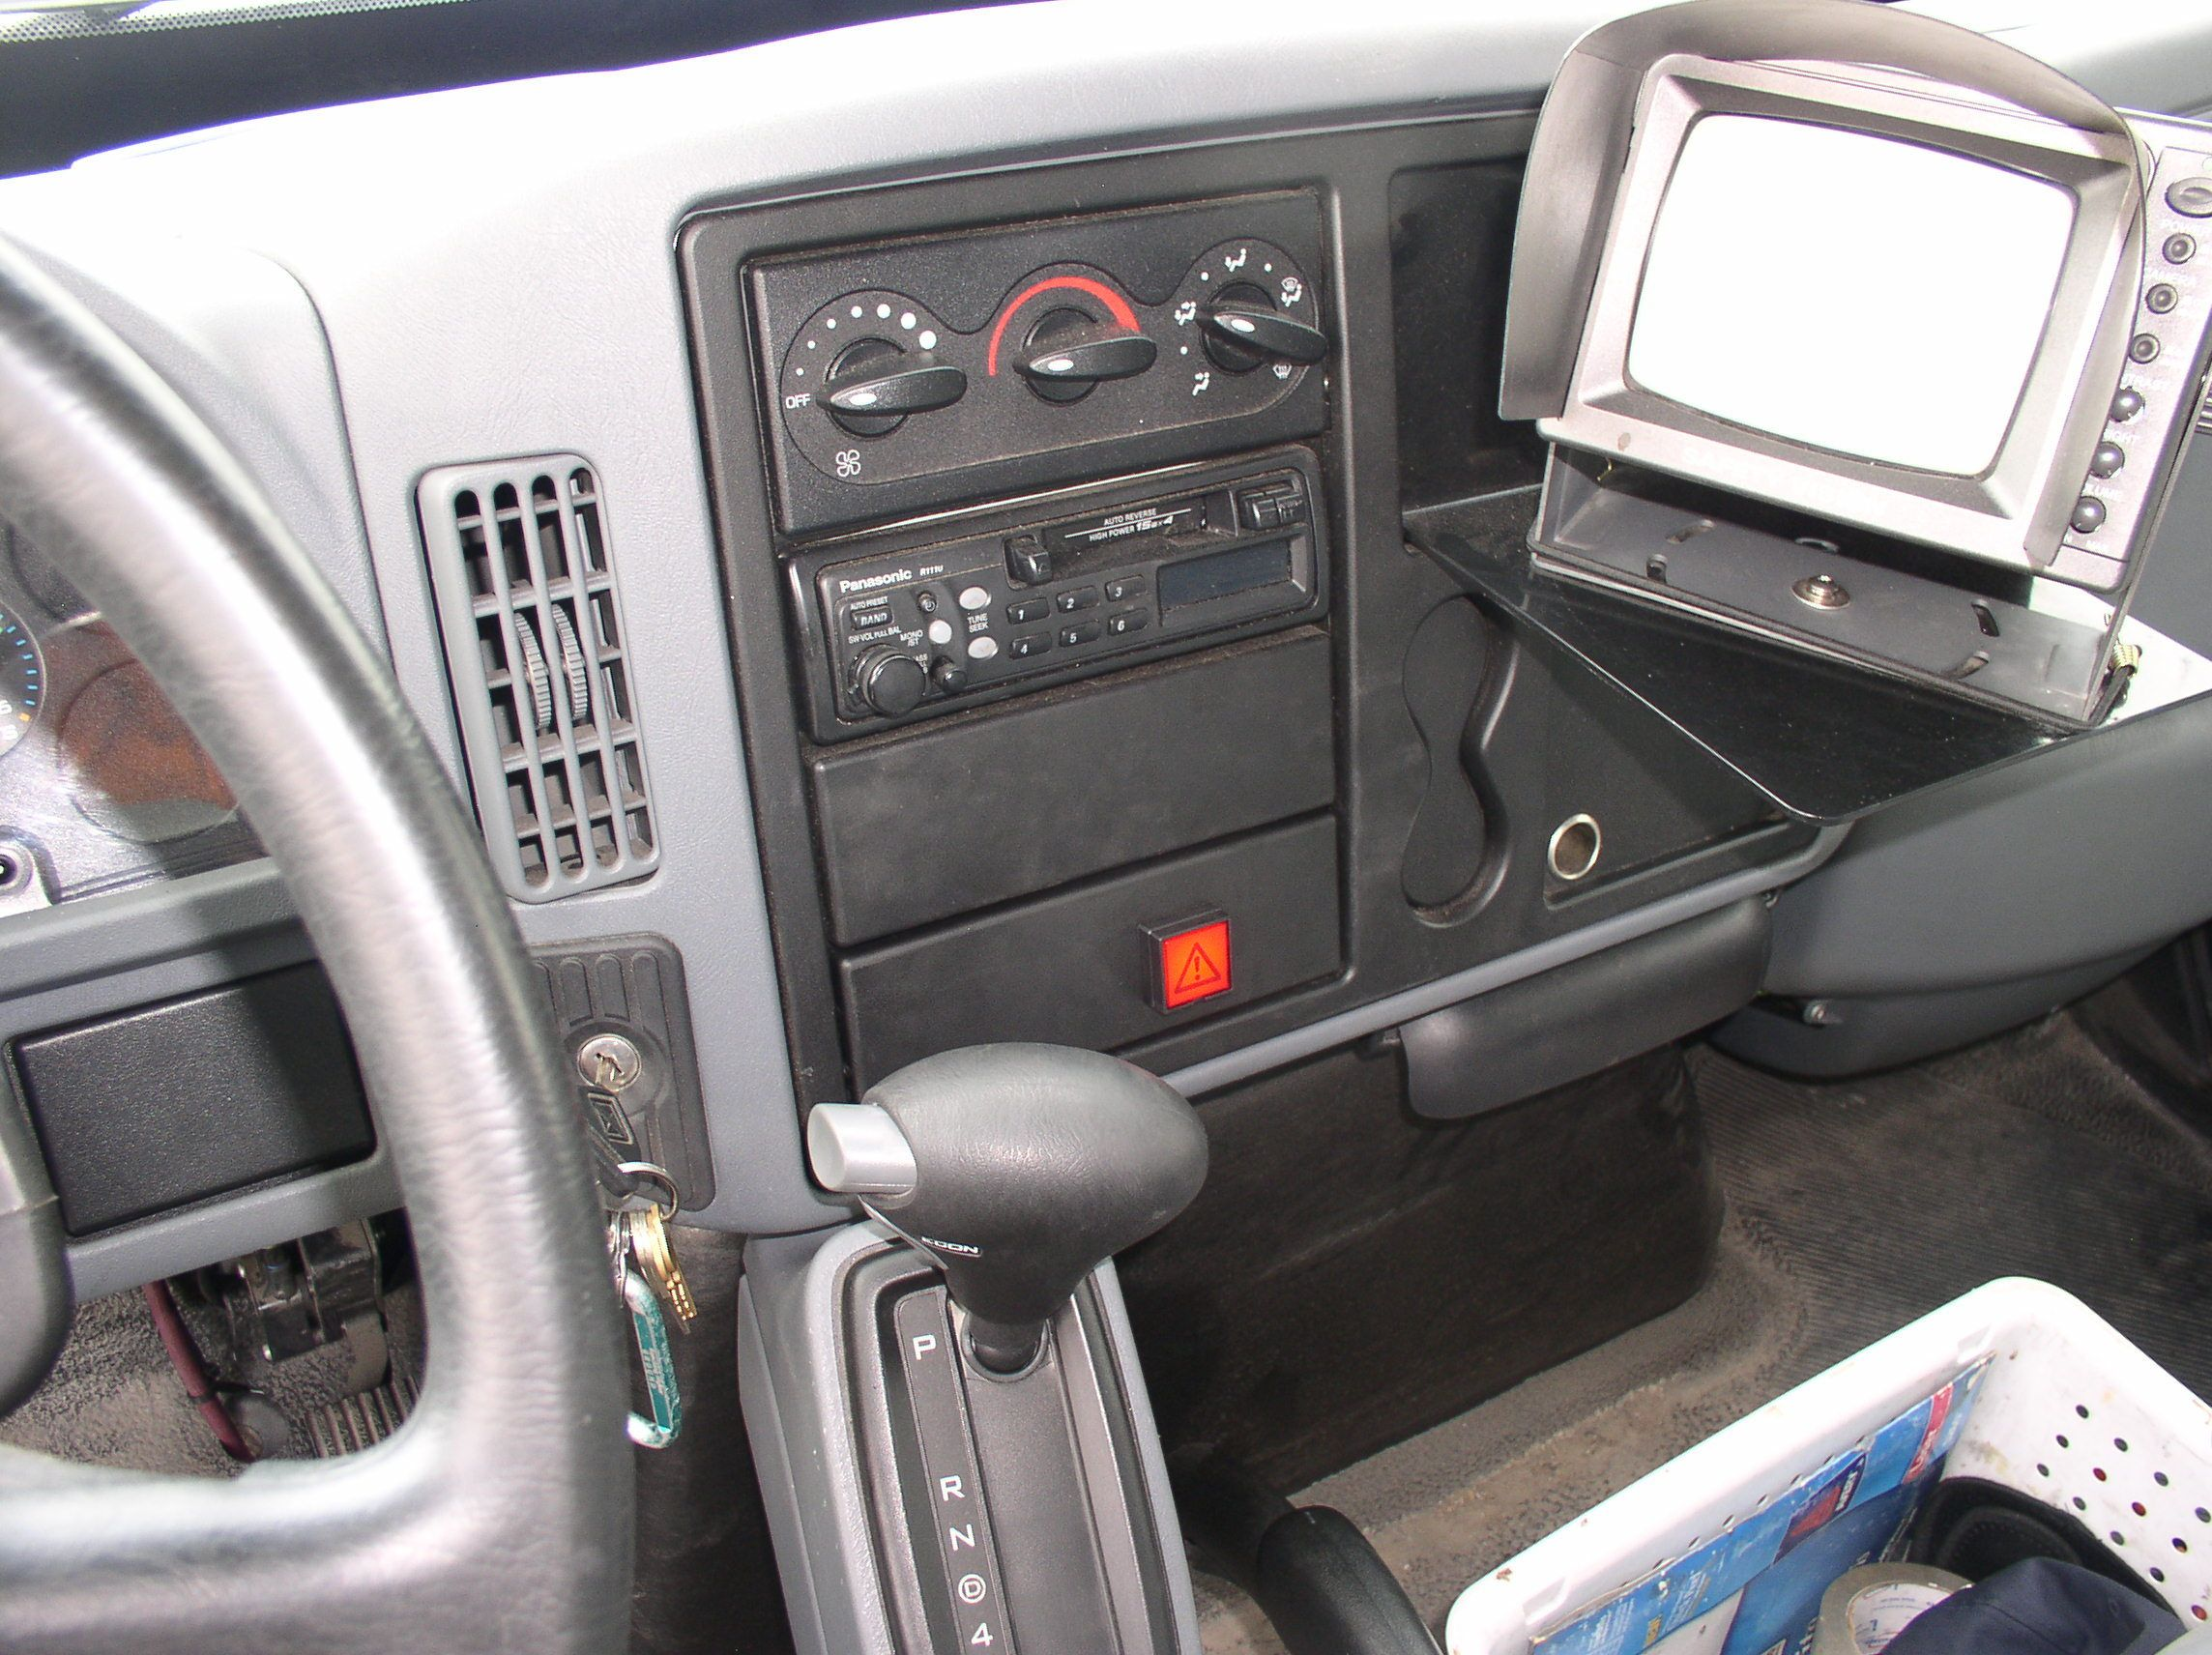 Fedex Ground Navistar Cab Interior With Hts Systems Idec Led Dash